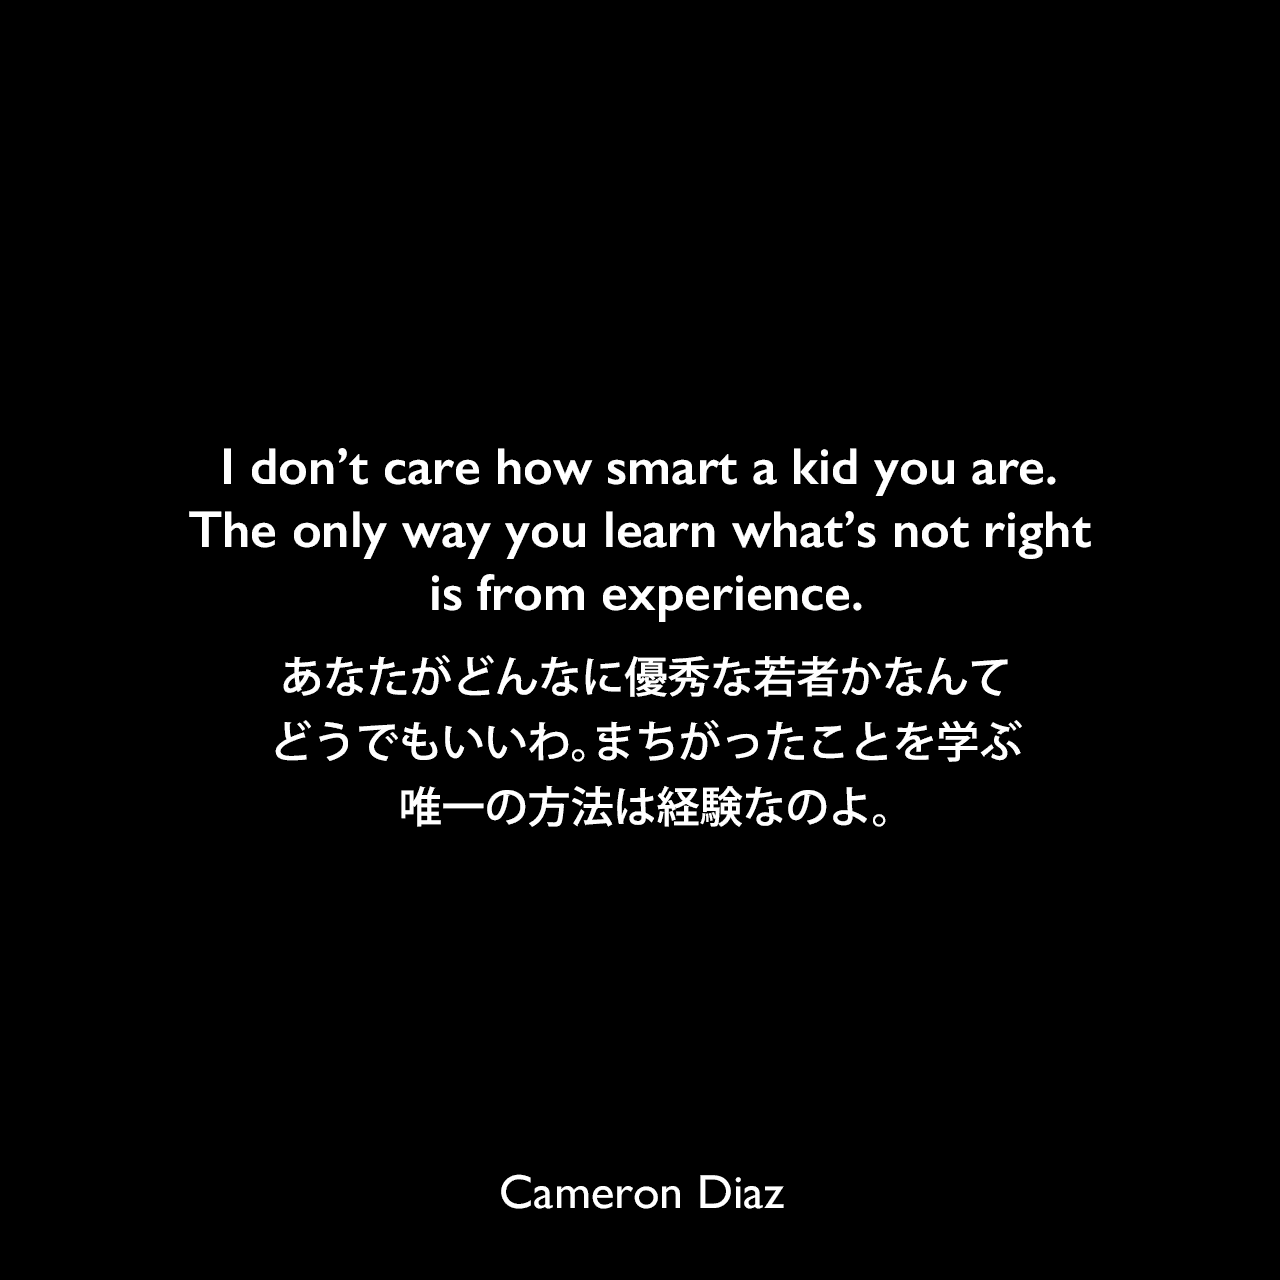 I don't care how smart a kid you are. The only way you learn what's not right is from experience.あなたがどんなに優秀な若者かなんて、どうでもいいわ。まちがったことを学ぶ唯一の方法は経験なのよ。Cameron Diaz